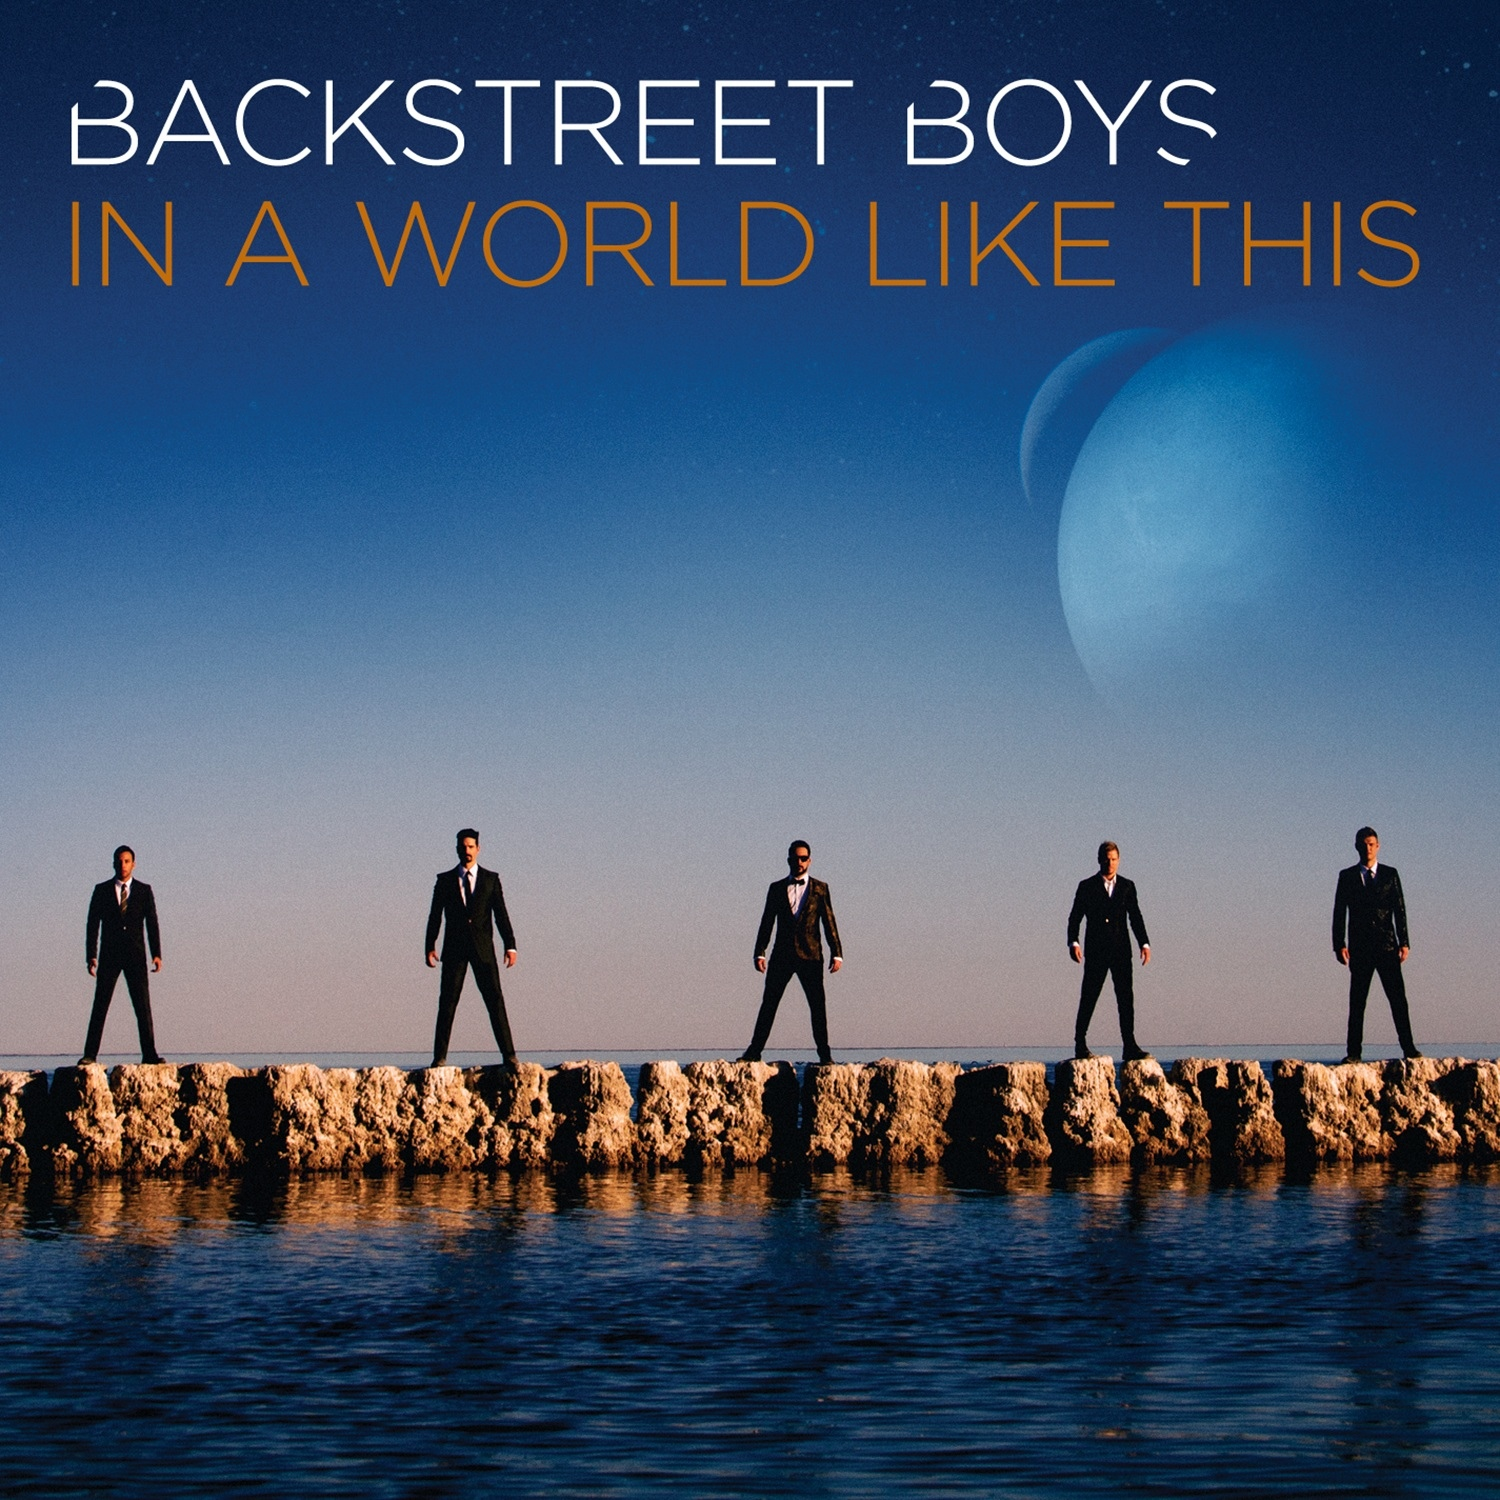 Backstreet Boys release new album and perform on Jimmy Kimmel Live tomorrow 7/30